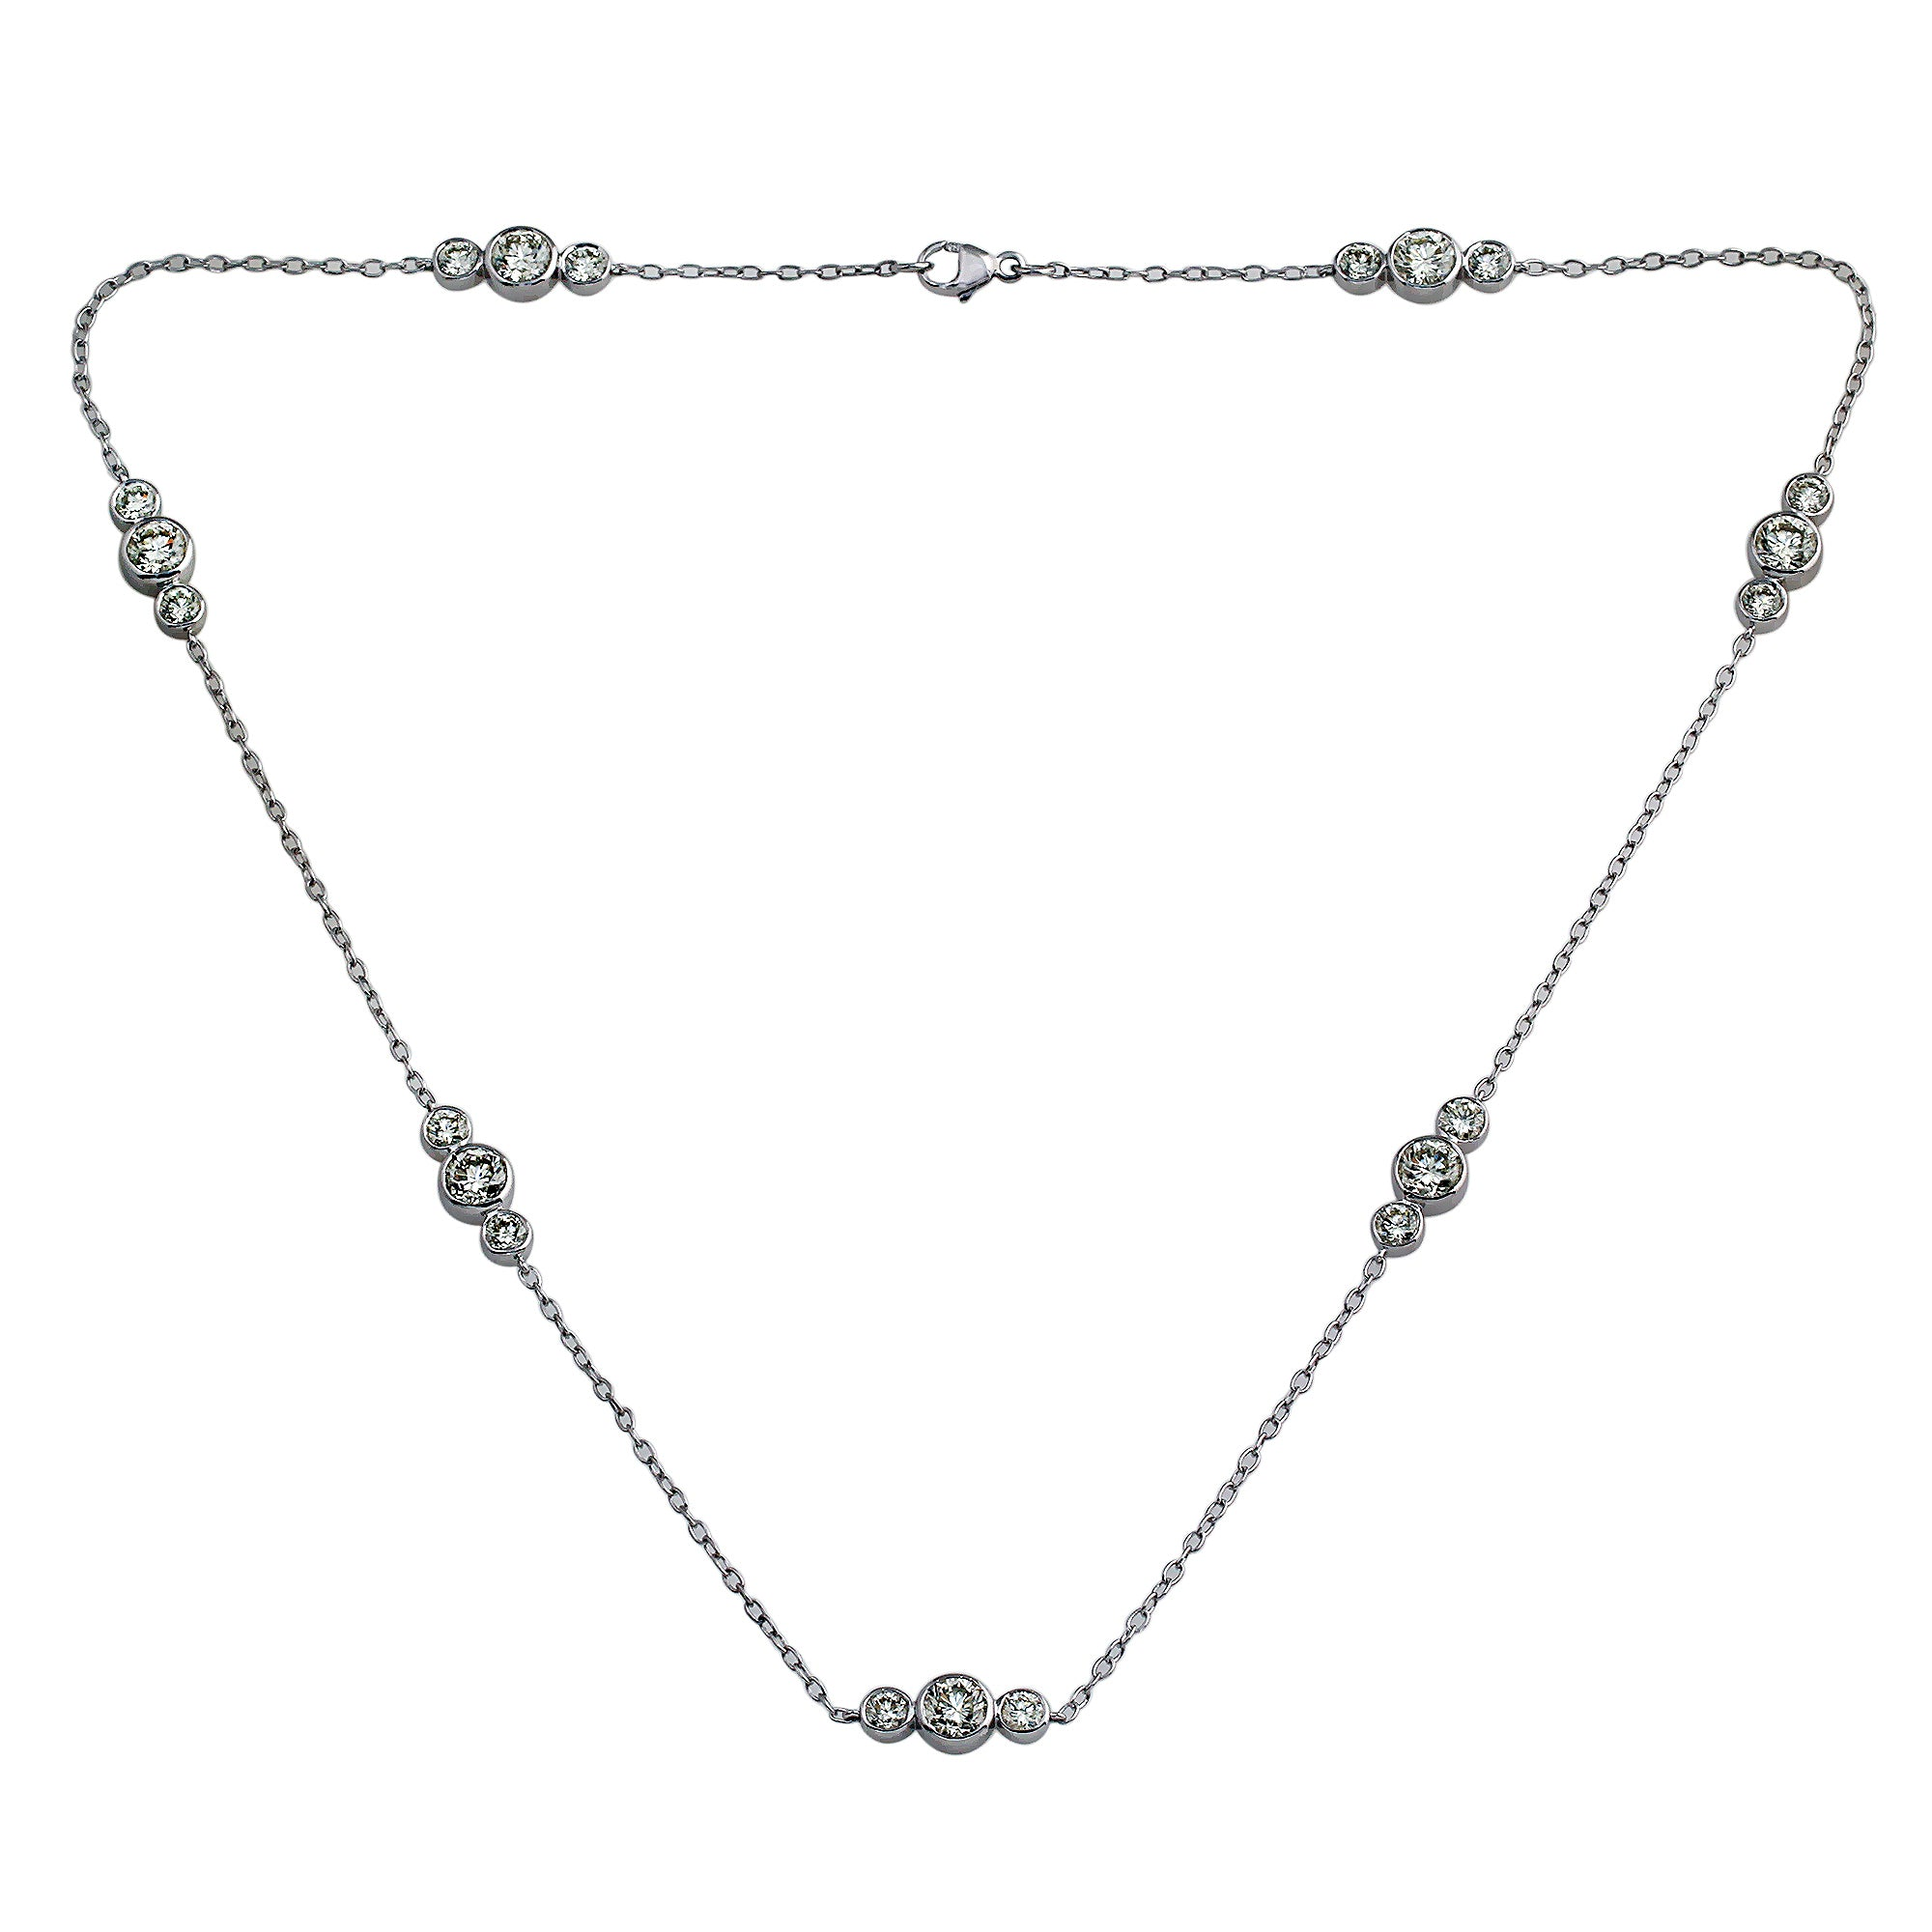 18K White Gold, 5.70CTTW 3 Stone Lab-Grown Diamonds by the Yard Station Necklace